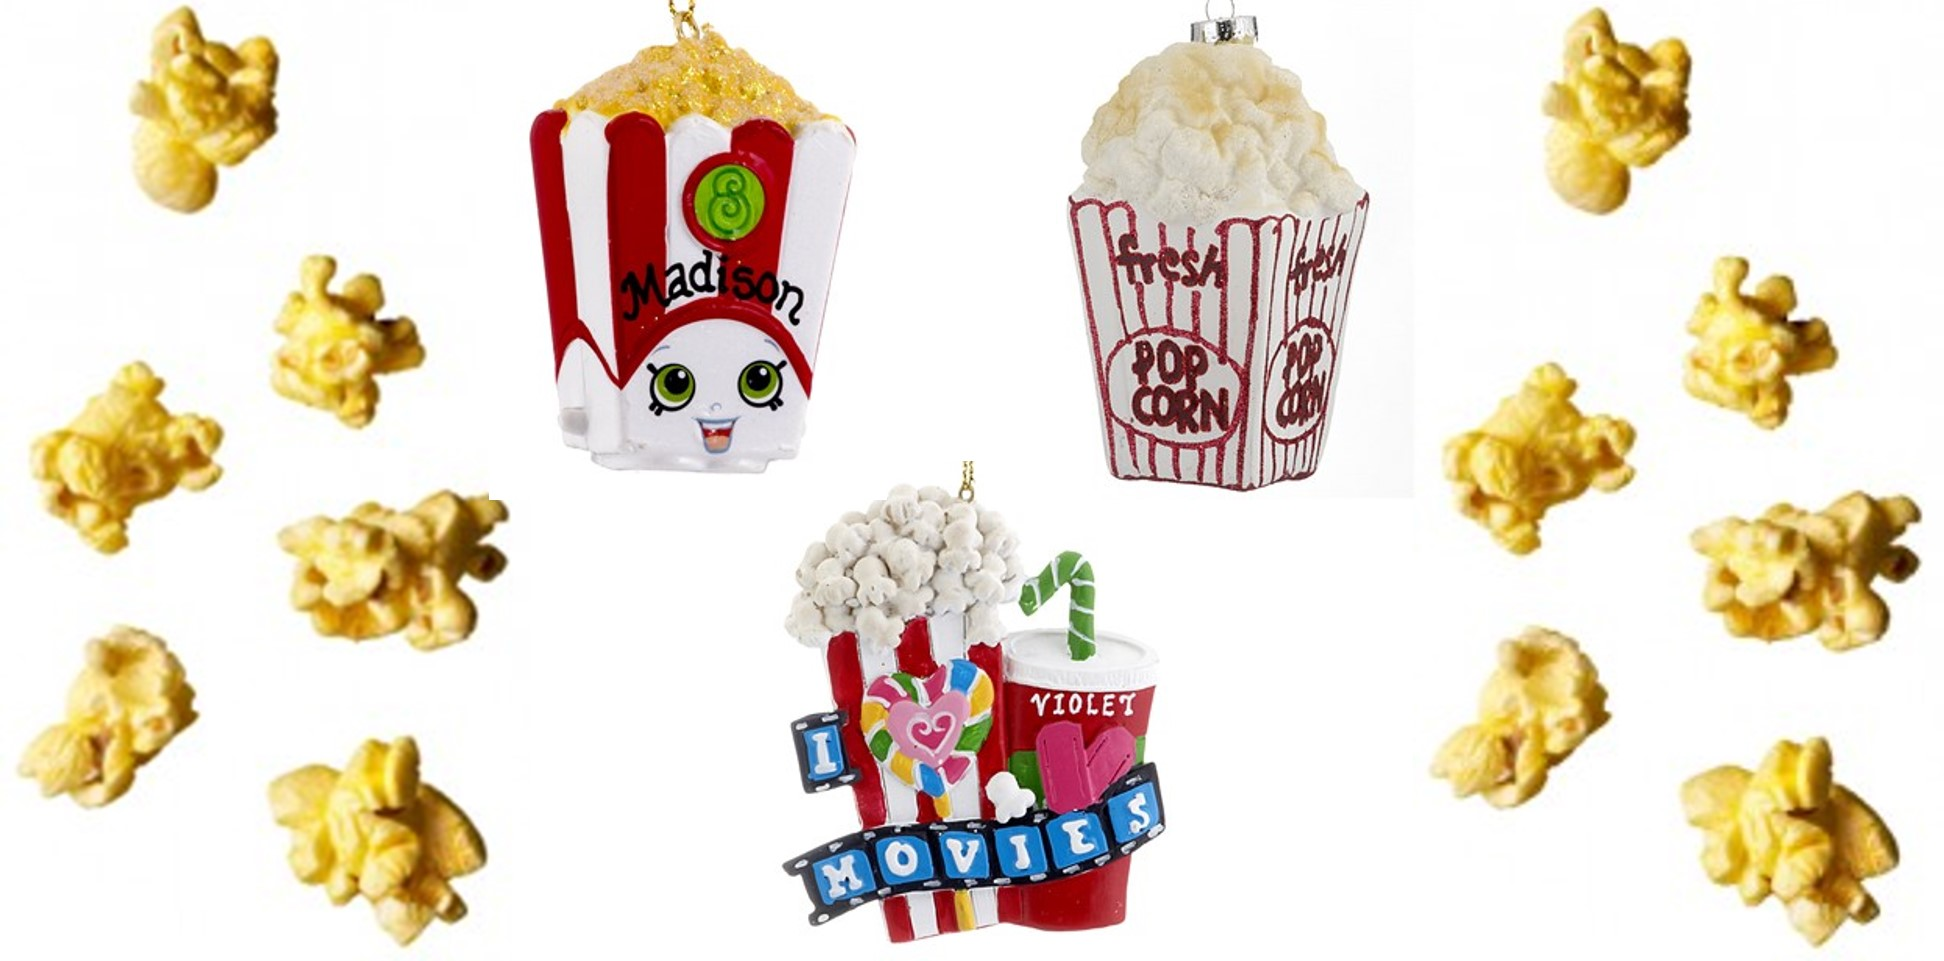 A collage of Popcorn Ornaments and Concession Stand symbols. | OrnamentShop.com